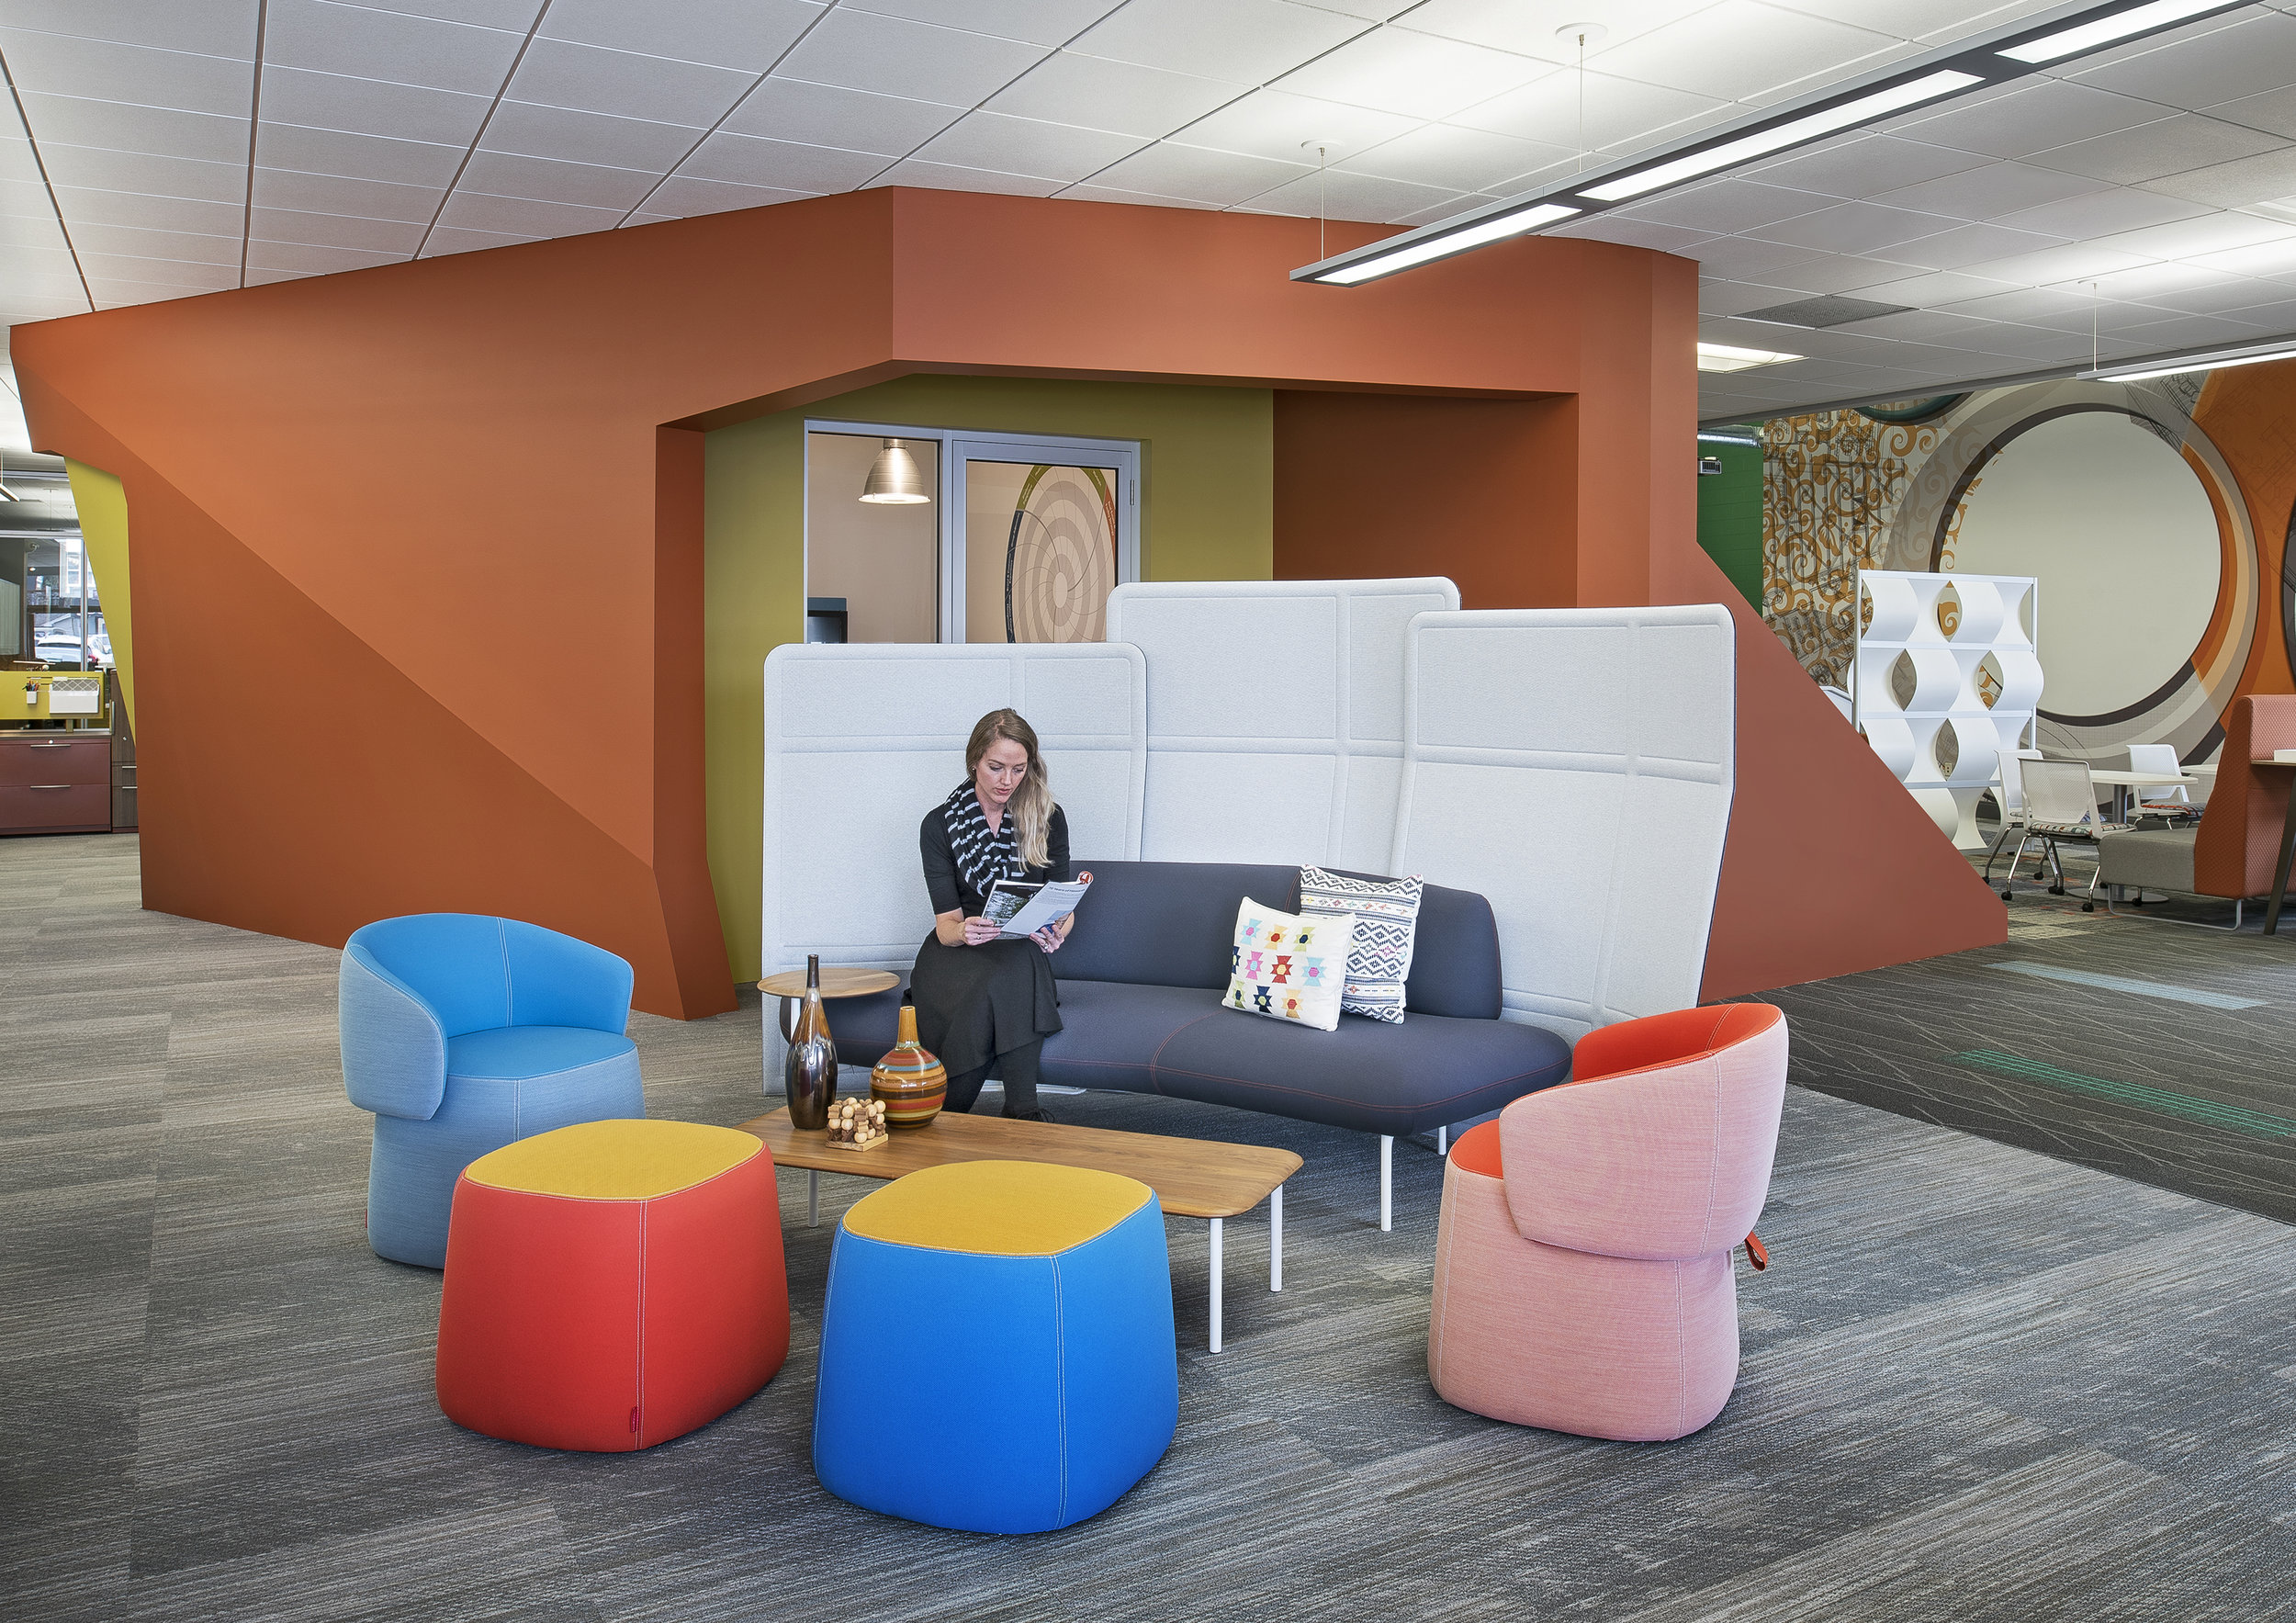 Updated comfortable seating adds to the on-trend resimercial style. Updated paint and carpeting completely transforms the whole area with fresh colors and patterns.